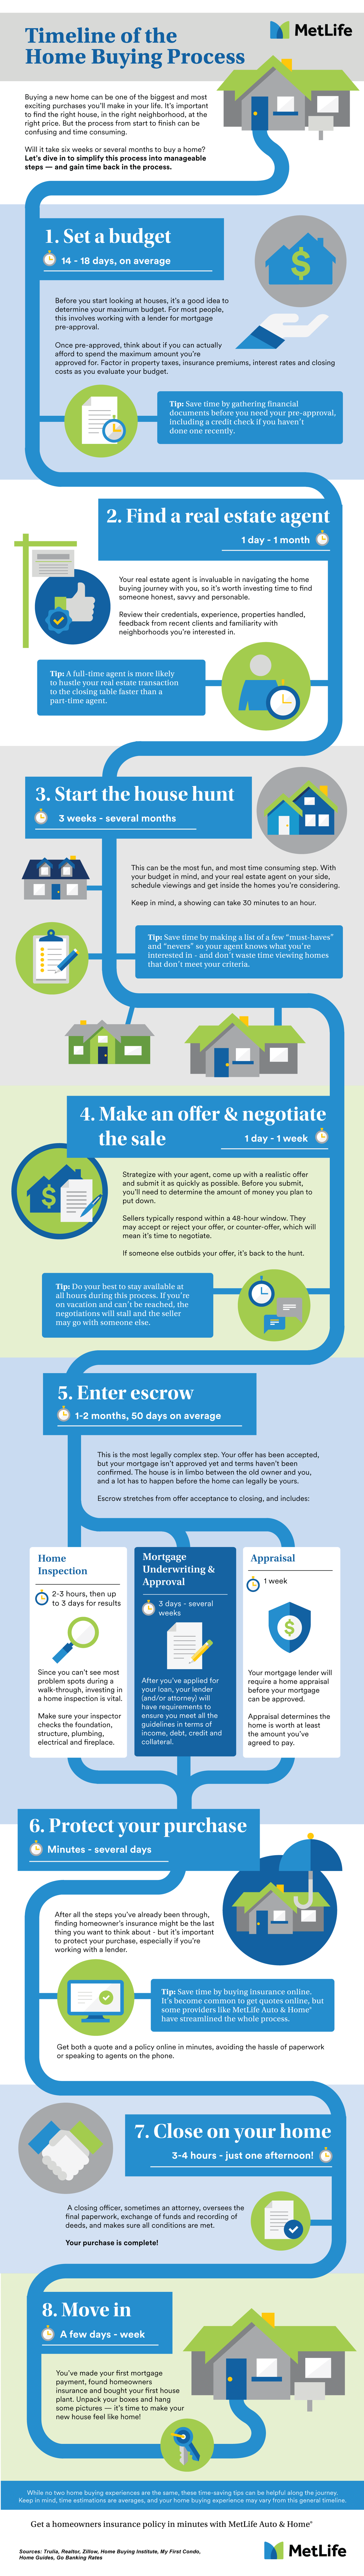 Timeline of the Home Buying Process -   MetLife